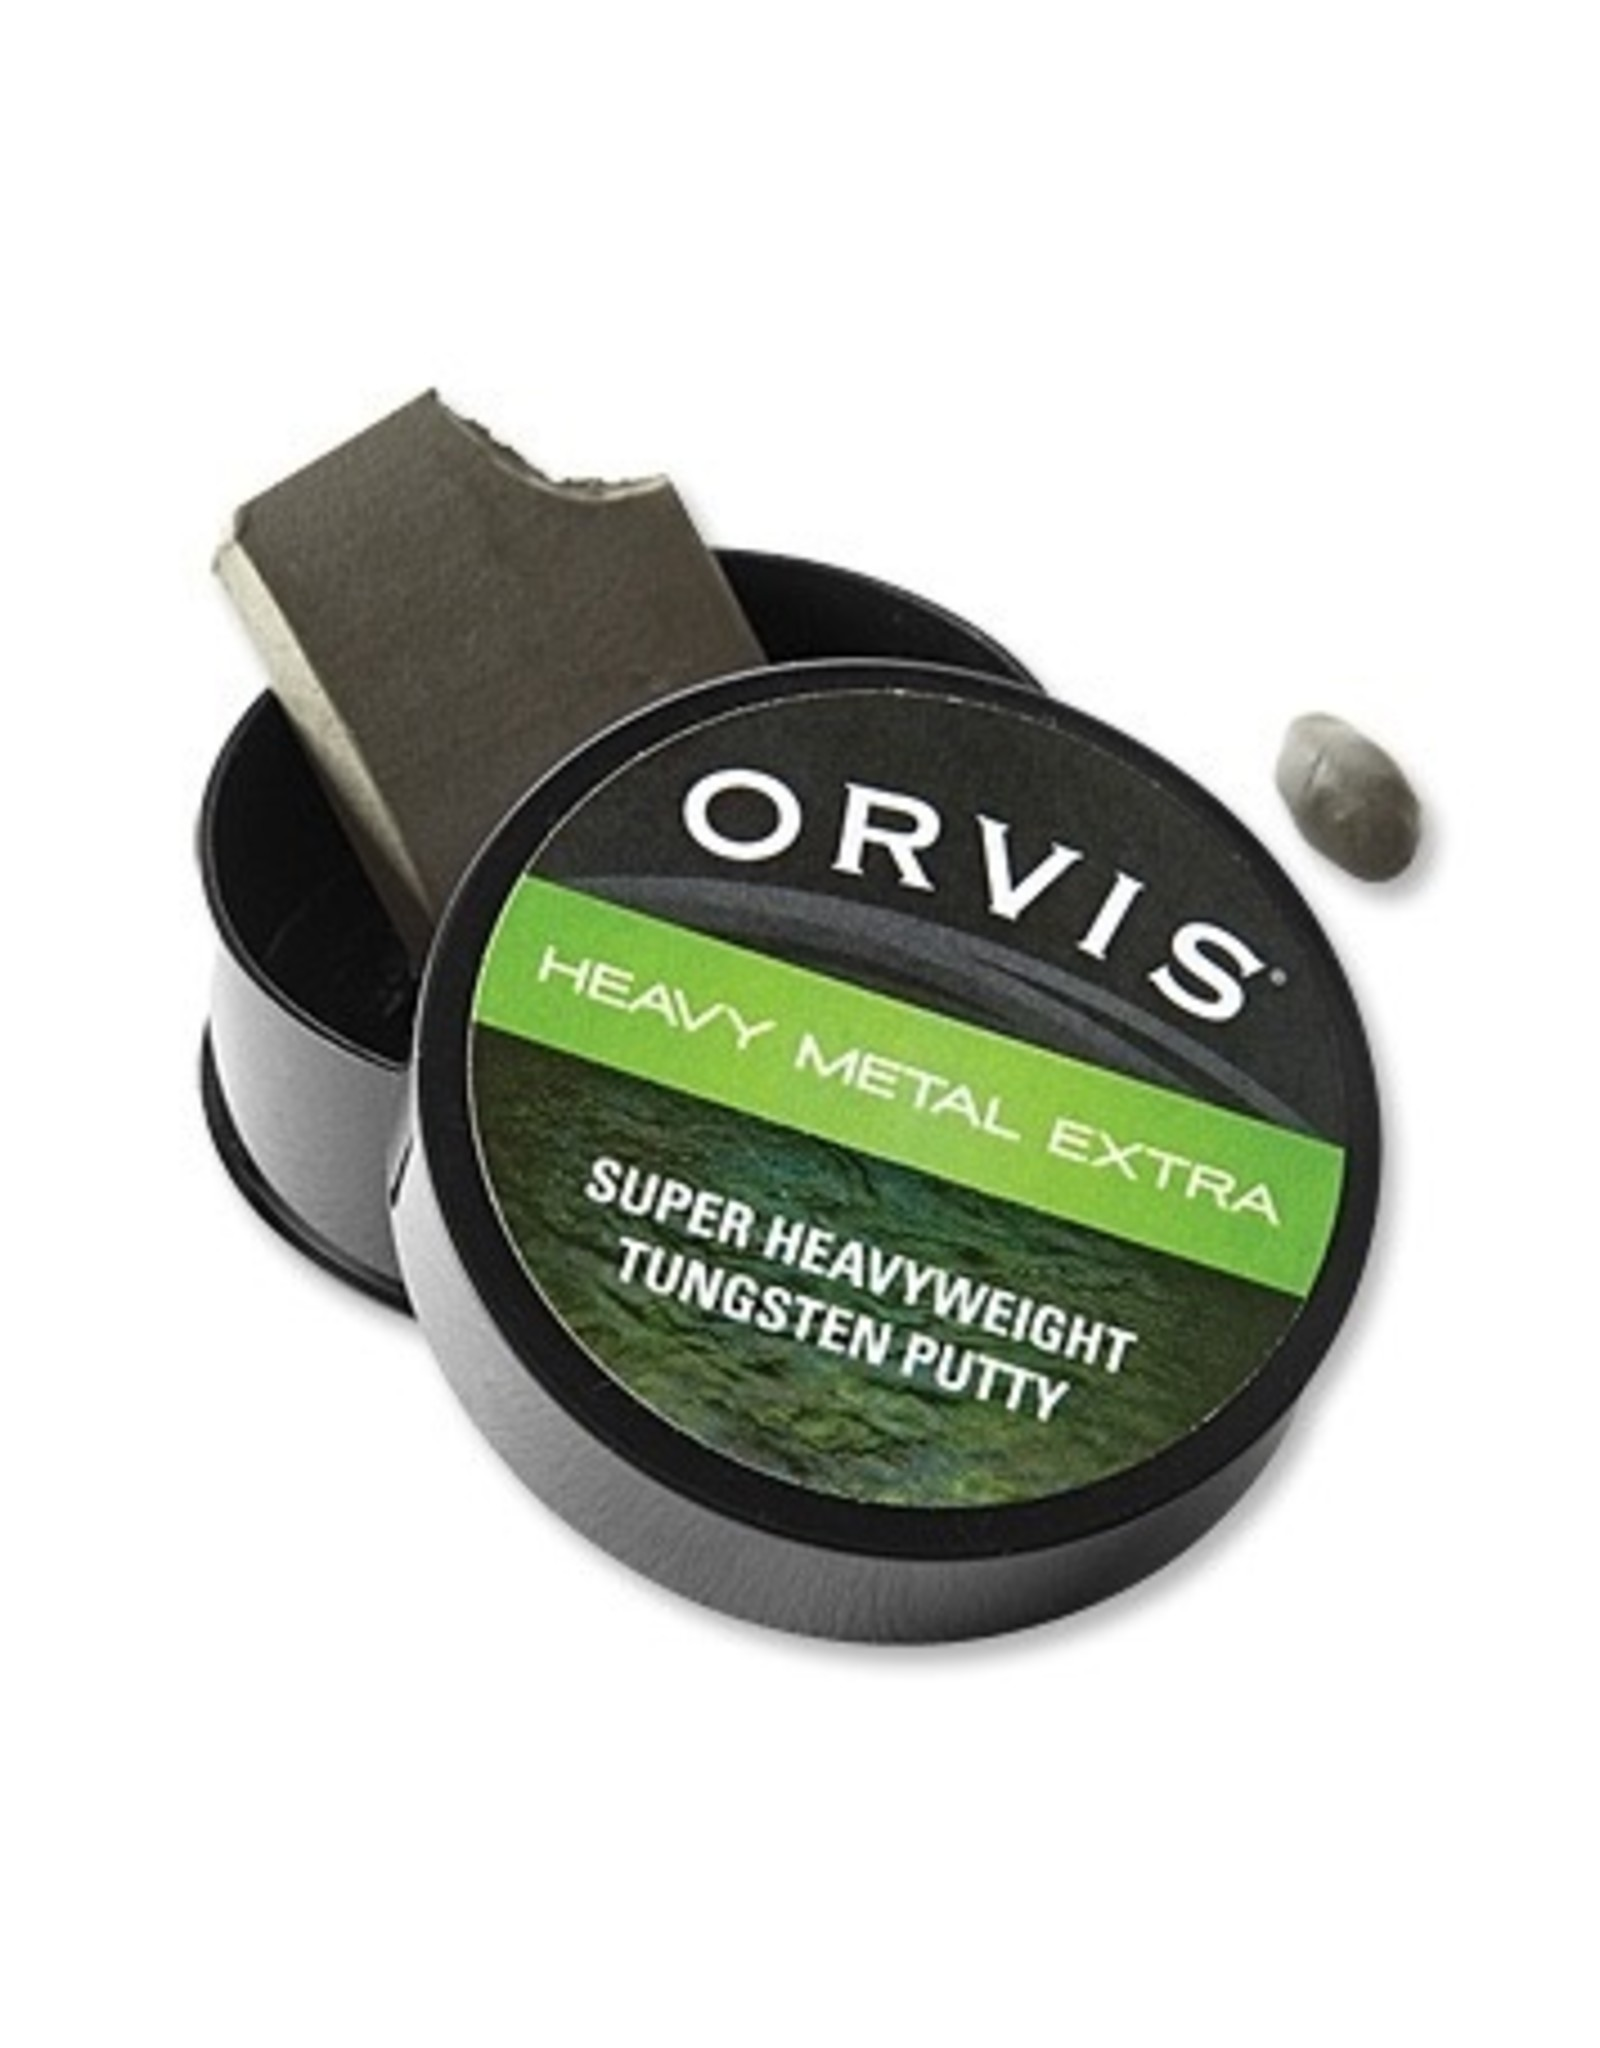 Orvis Orvis Heavy Metal Extra Sink Putty